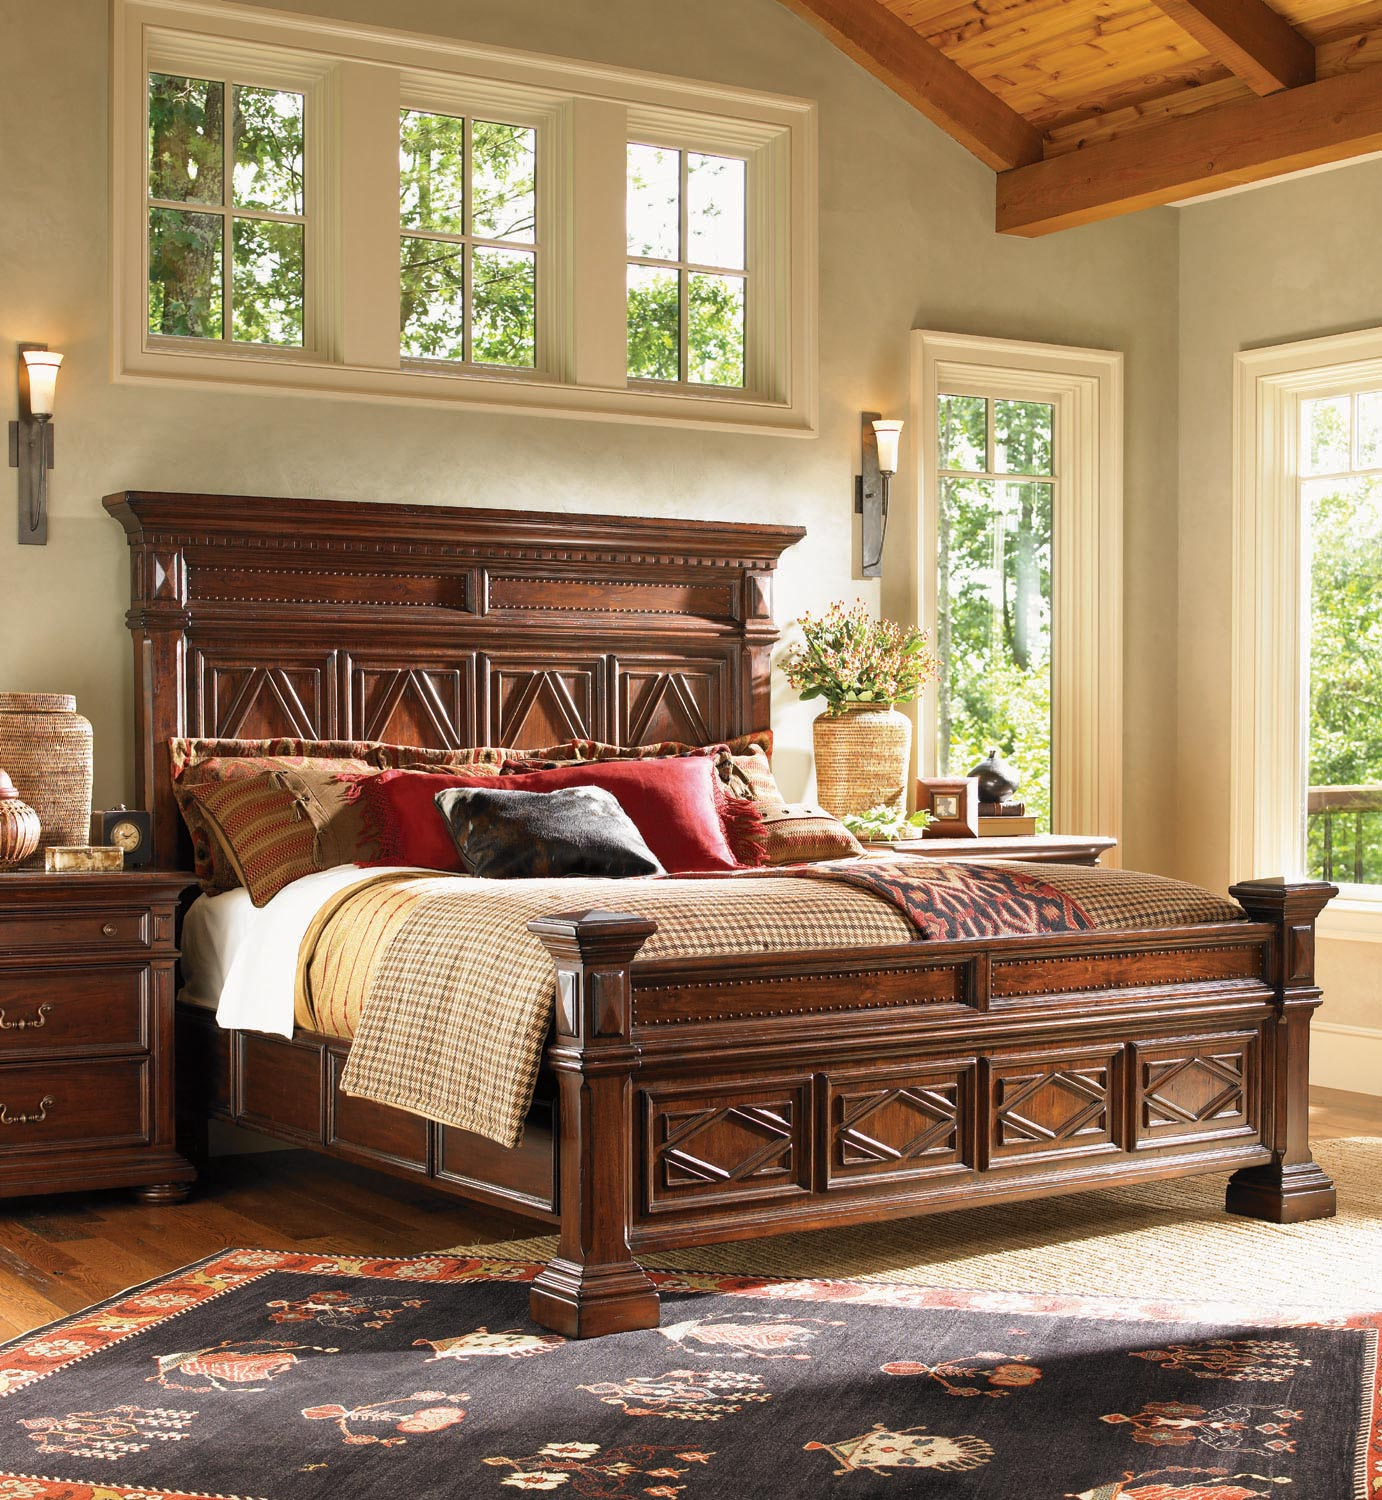 Fieldale Lodge Pine Lakes Bedroom Set In Mahogany Brown